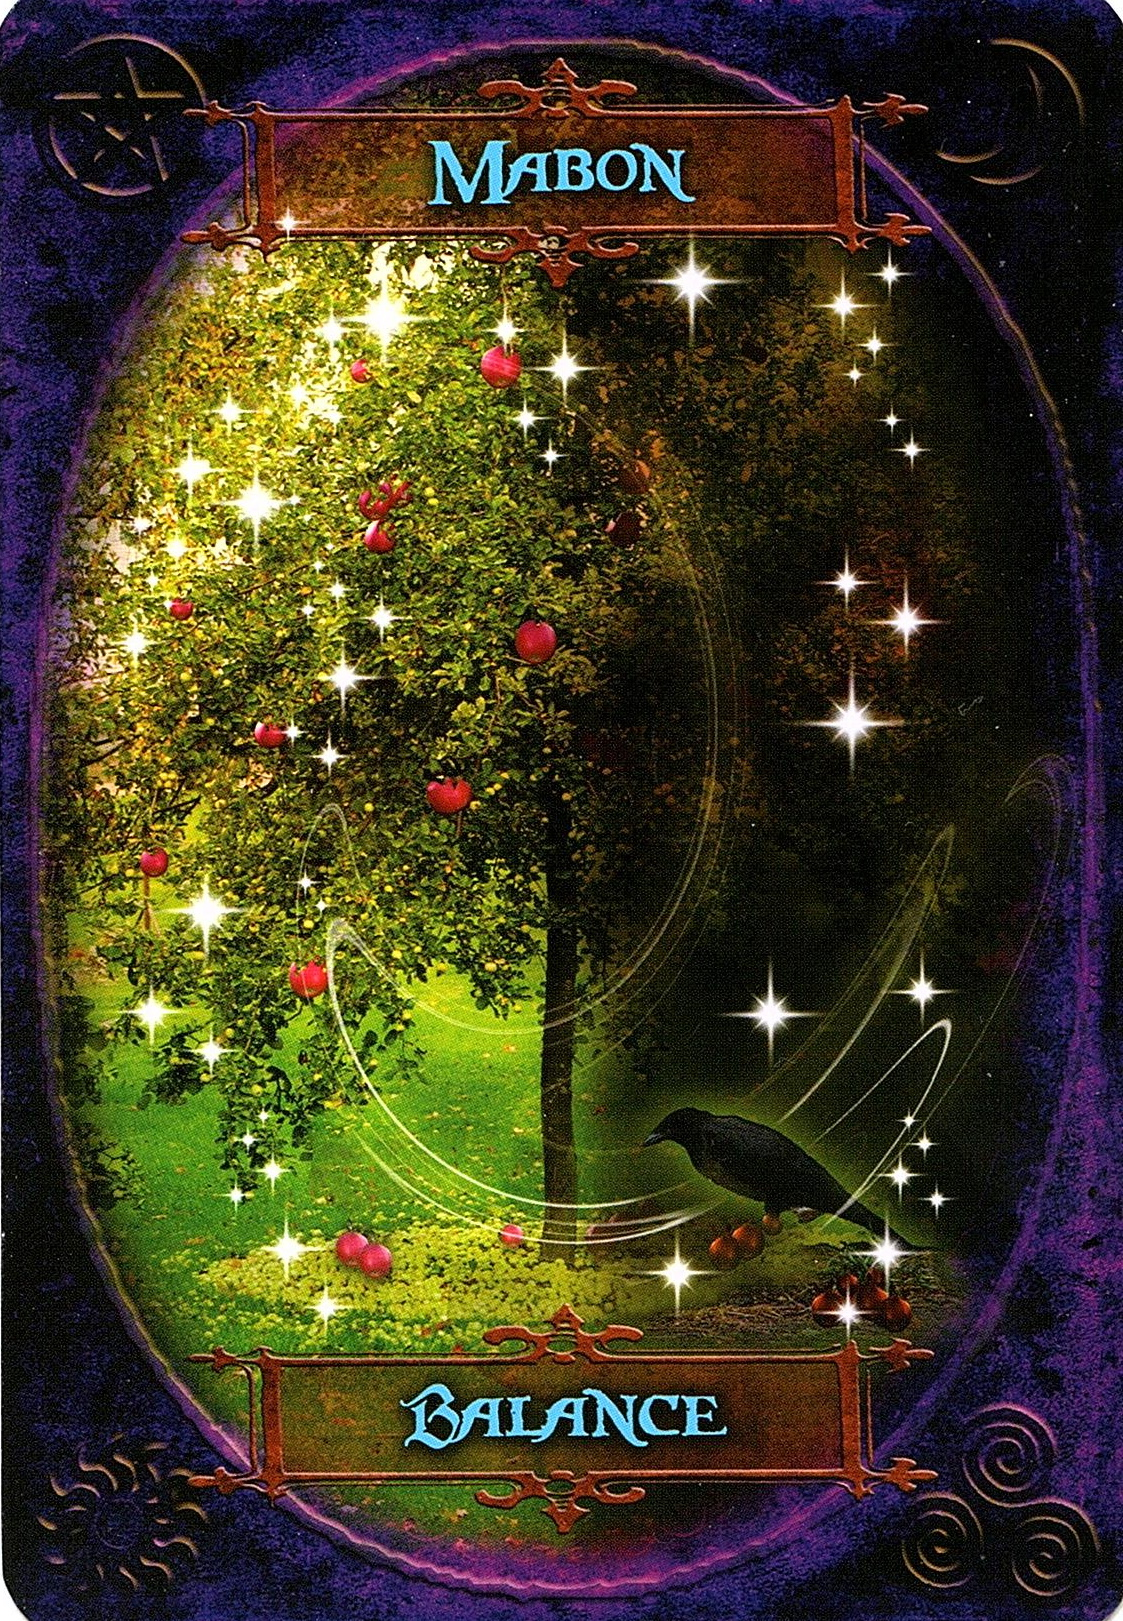 Weekly Oracle Reading for the Week of September 20 – September 26 by Lady Dyanna